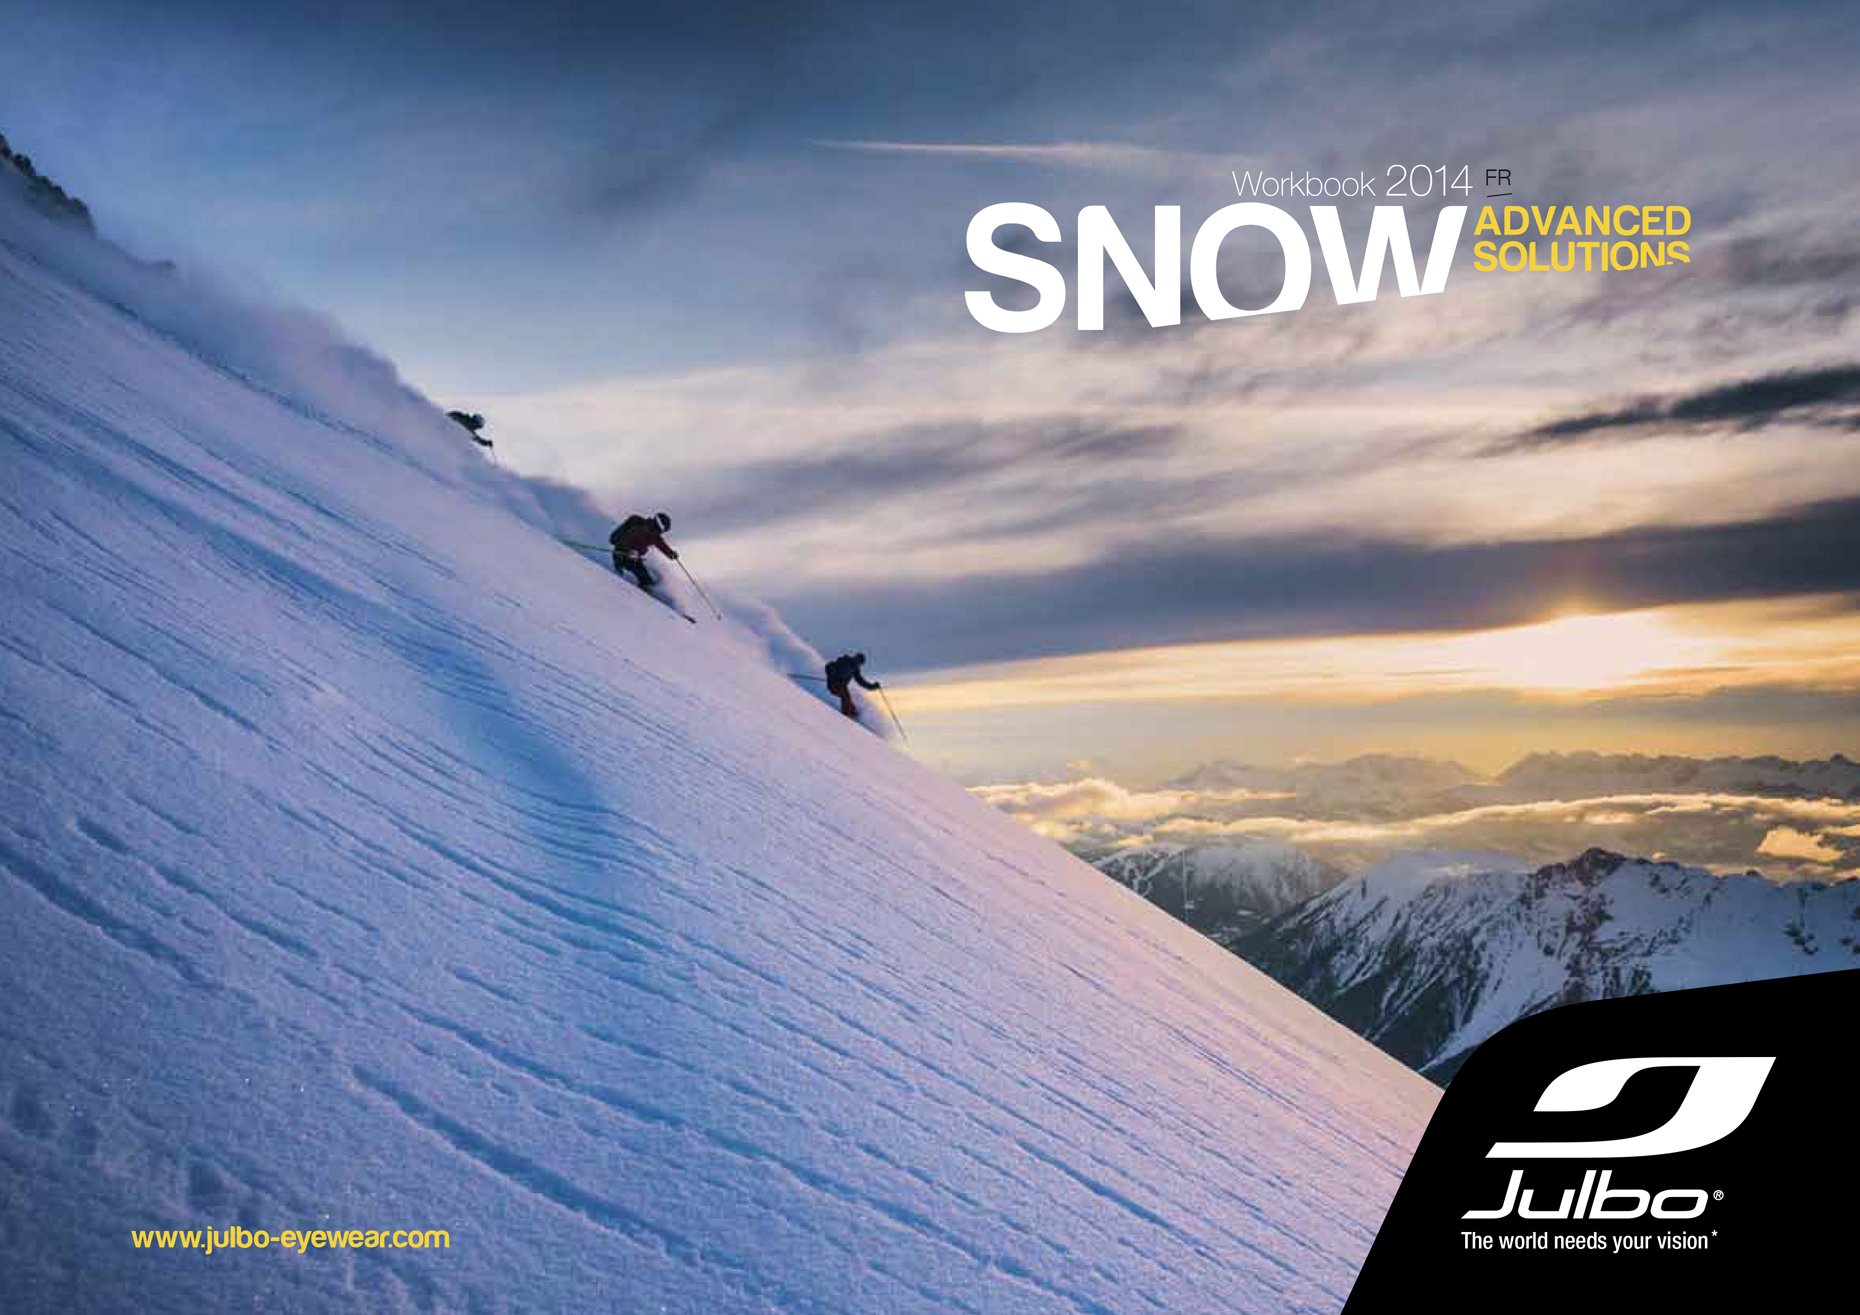 Julbo - Catalog cover winter 2014  - Marc Daviet Photography